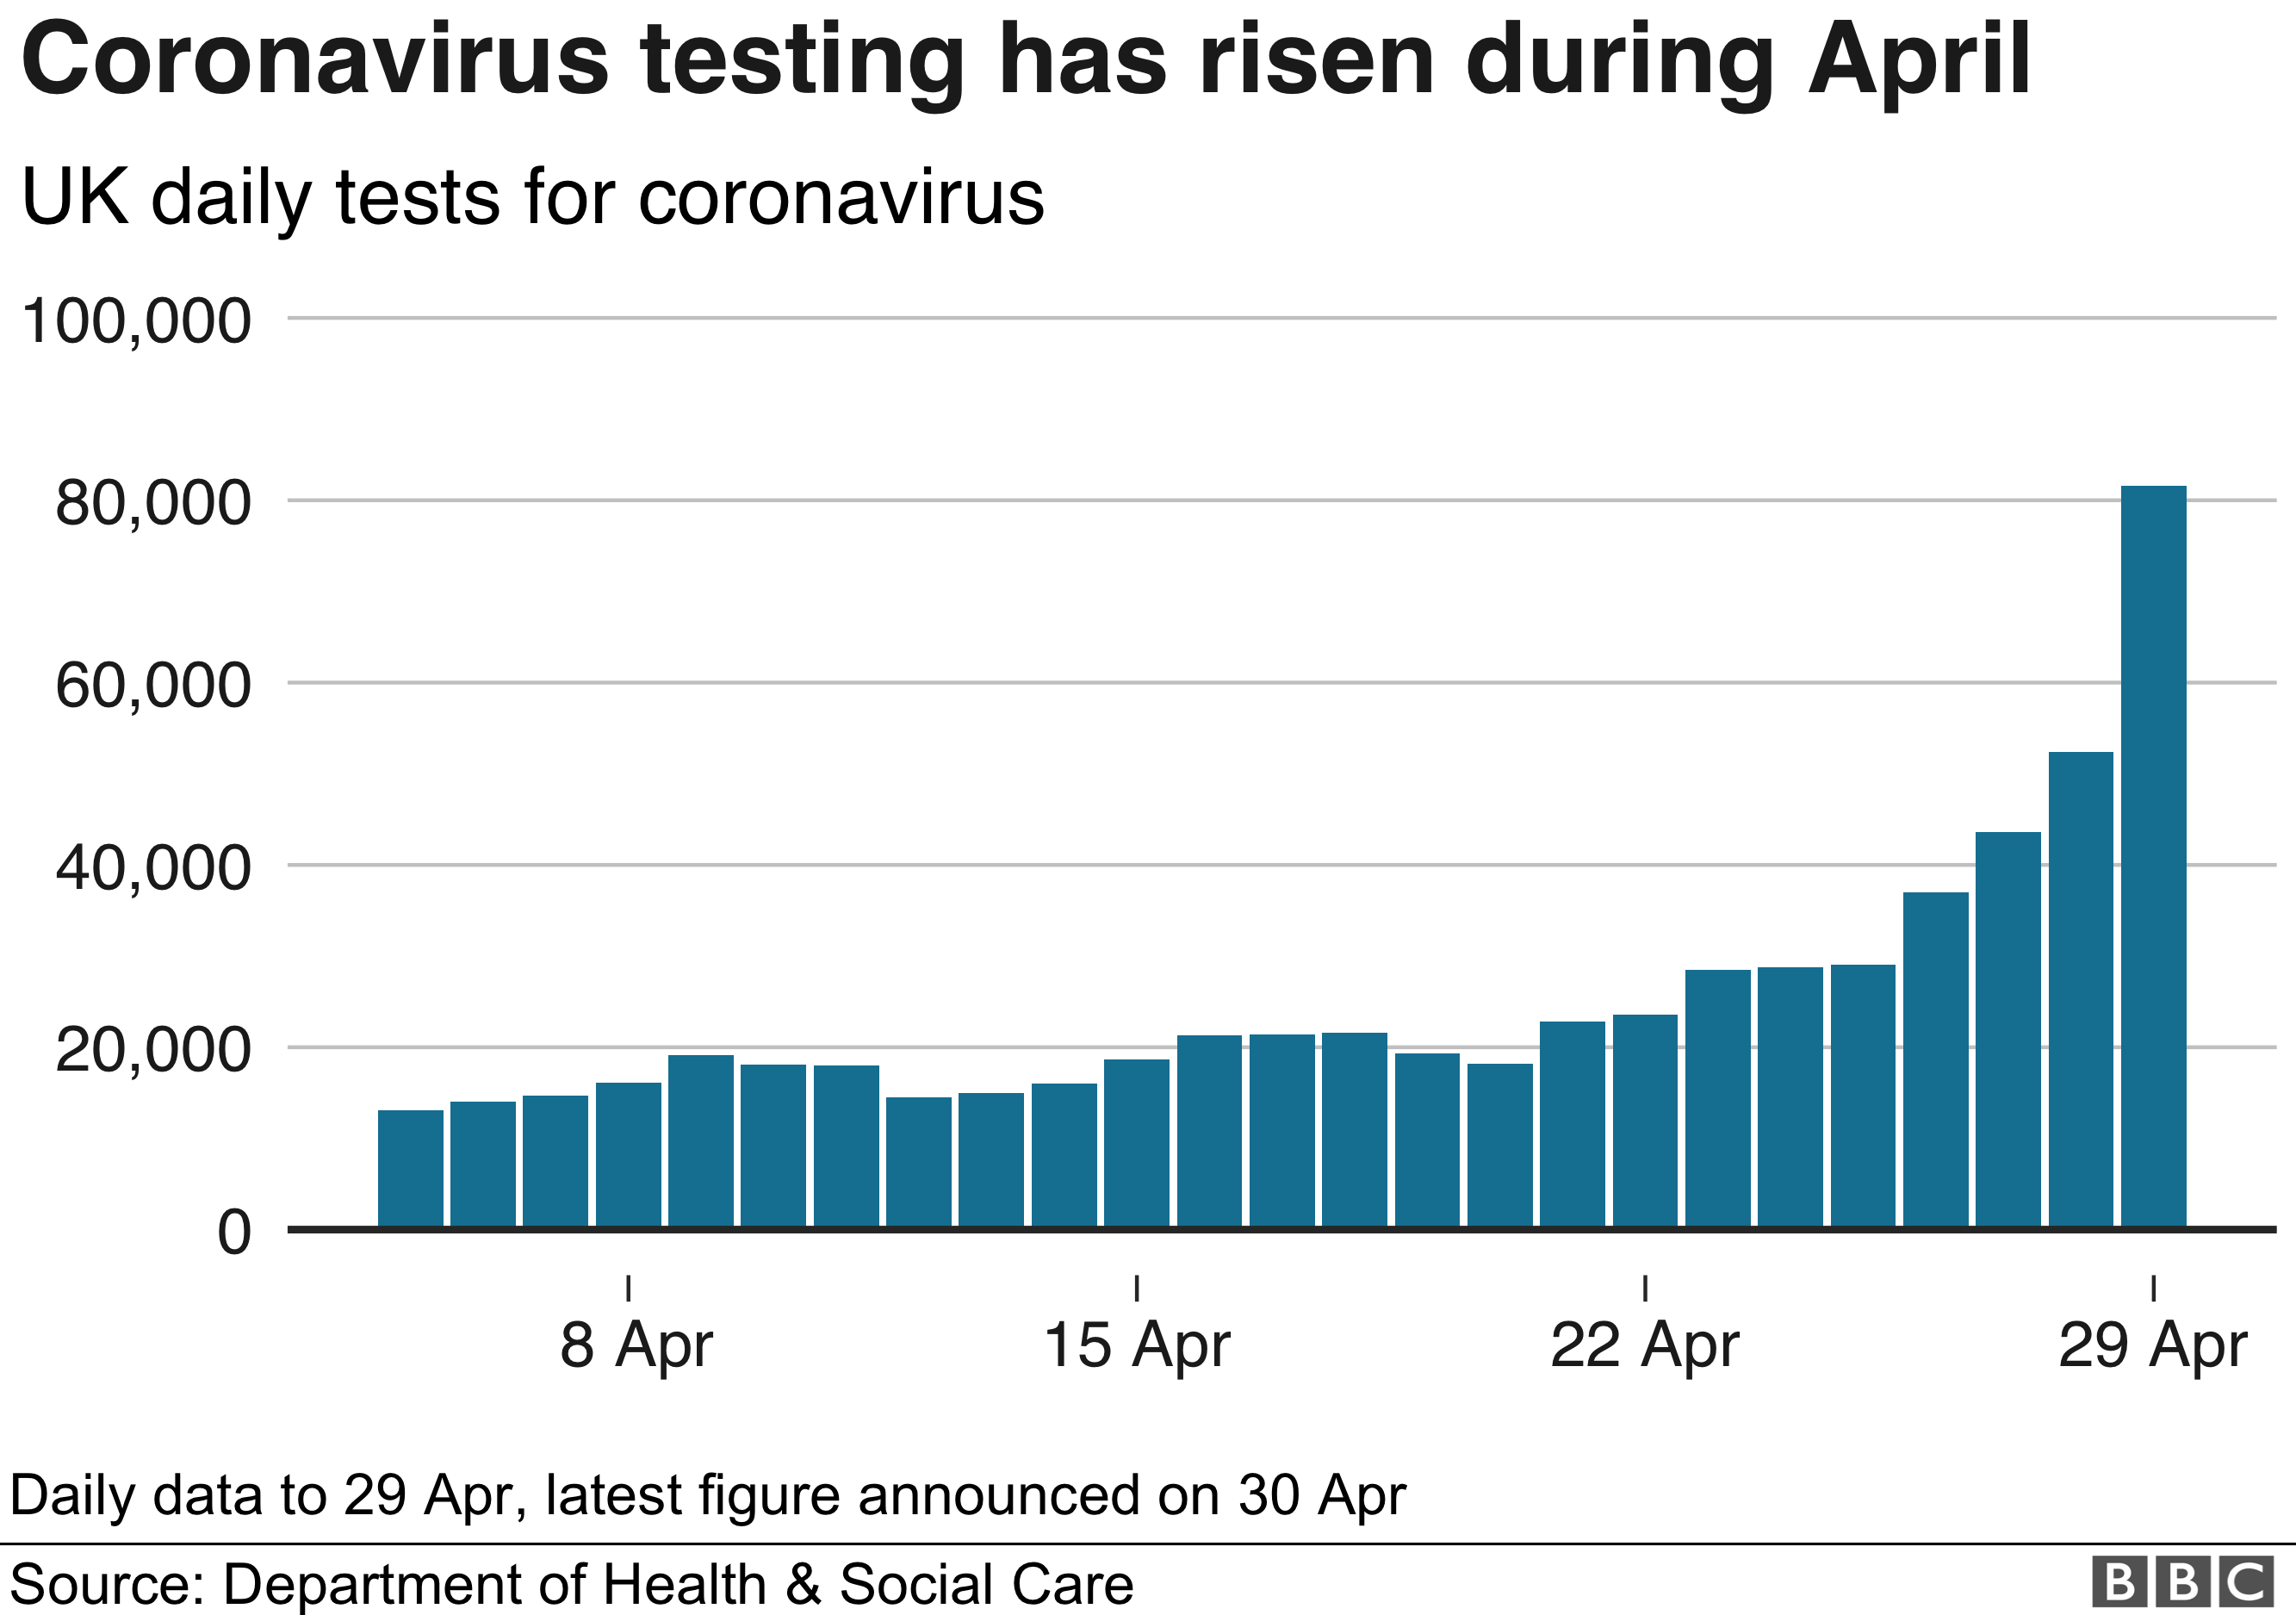 Chart showing the number of daily coronavirus tests during April